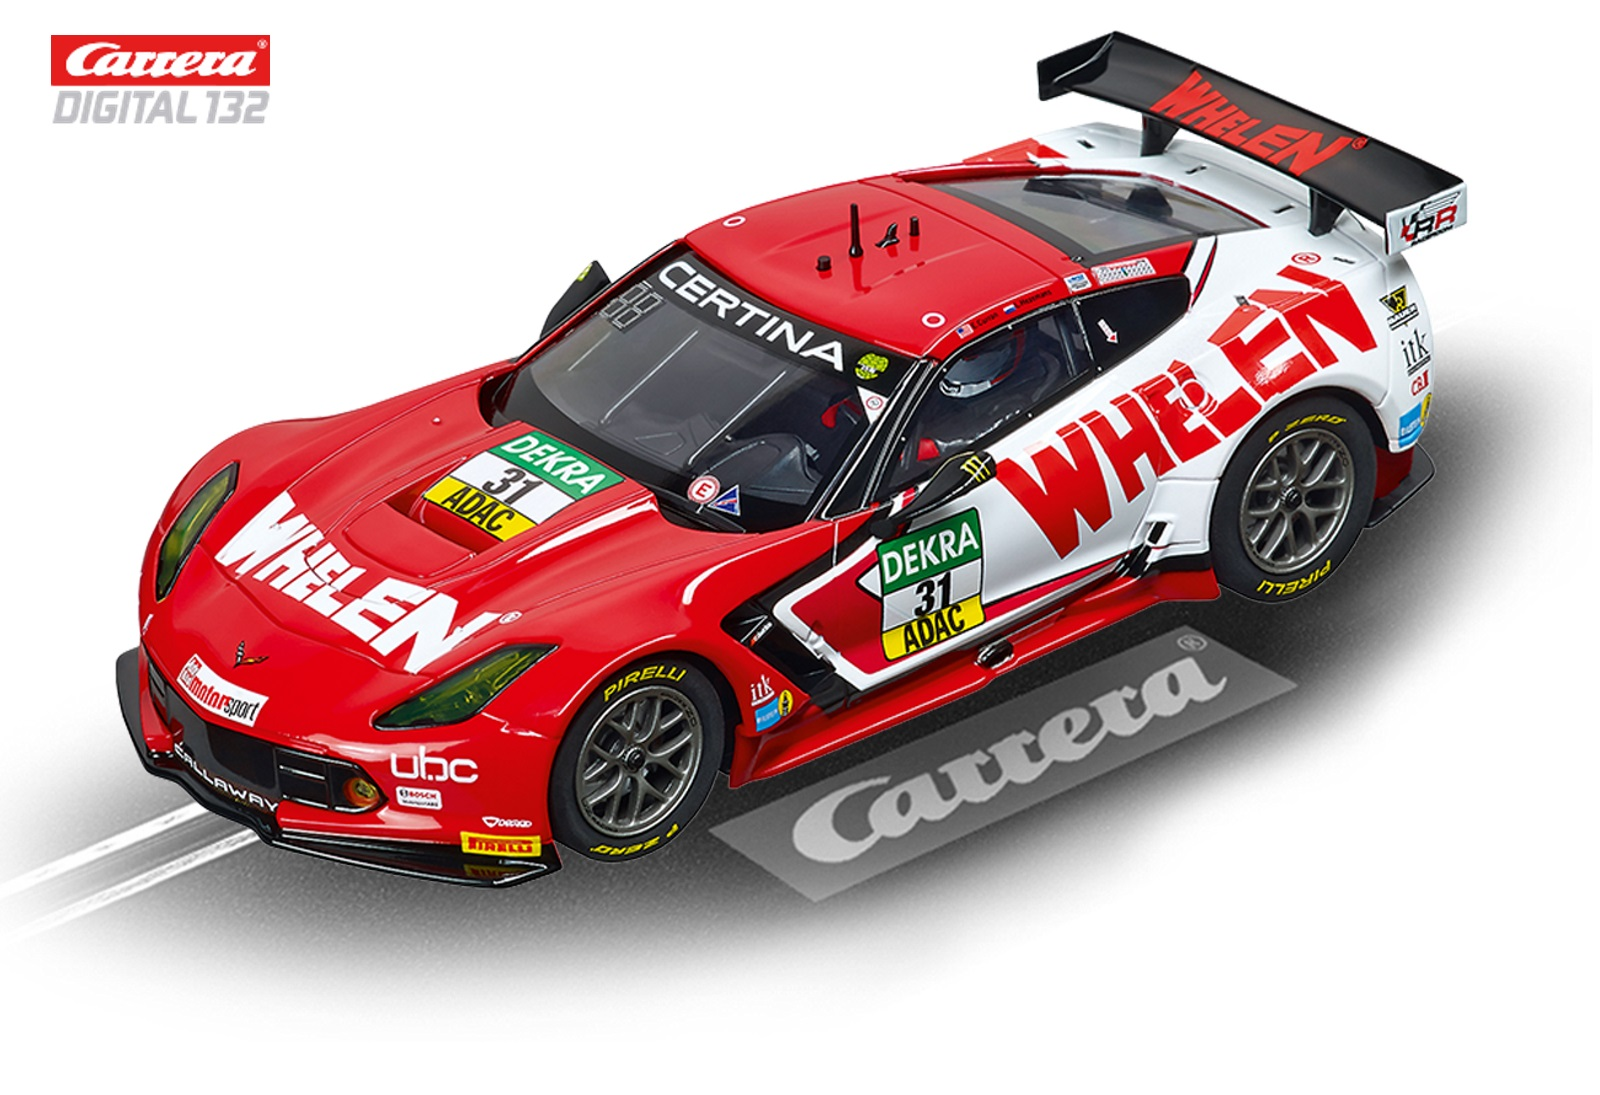 carrera digital 132 corvette c7 r whelen motorsports 30787 rennbahnen slotcars carrera. Black Bedroom Furniture Sets. Home Design Ideas